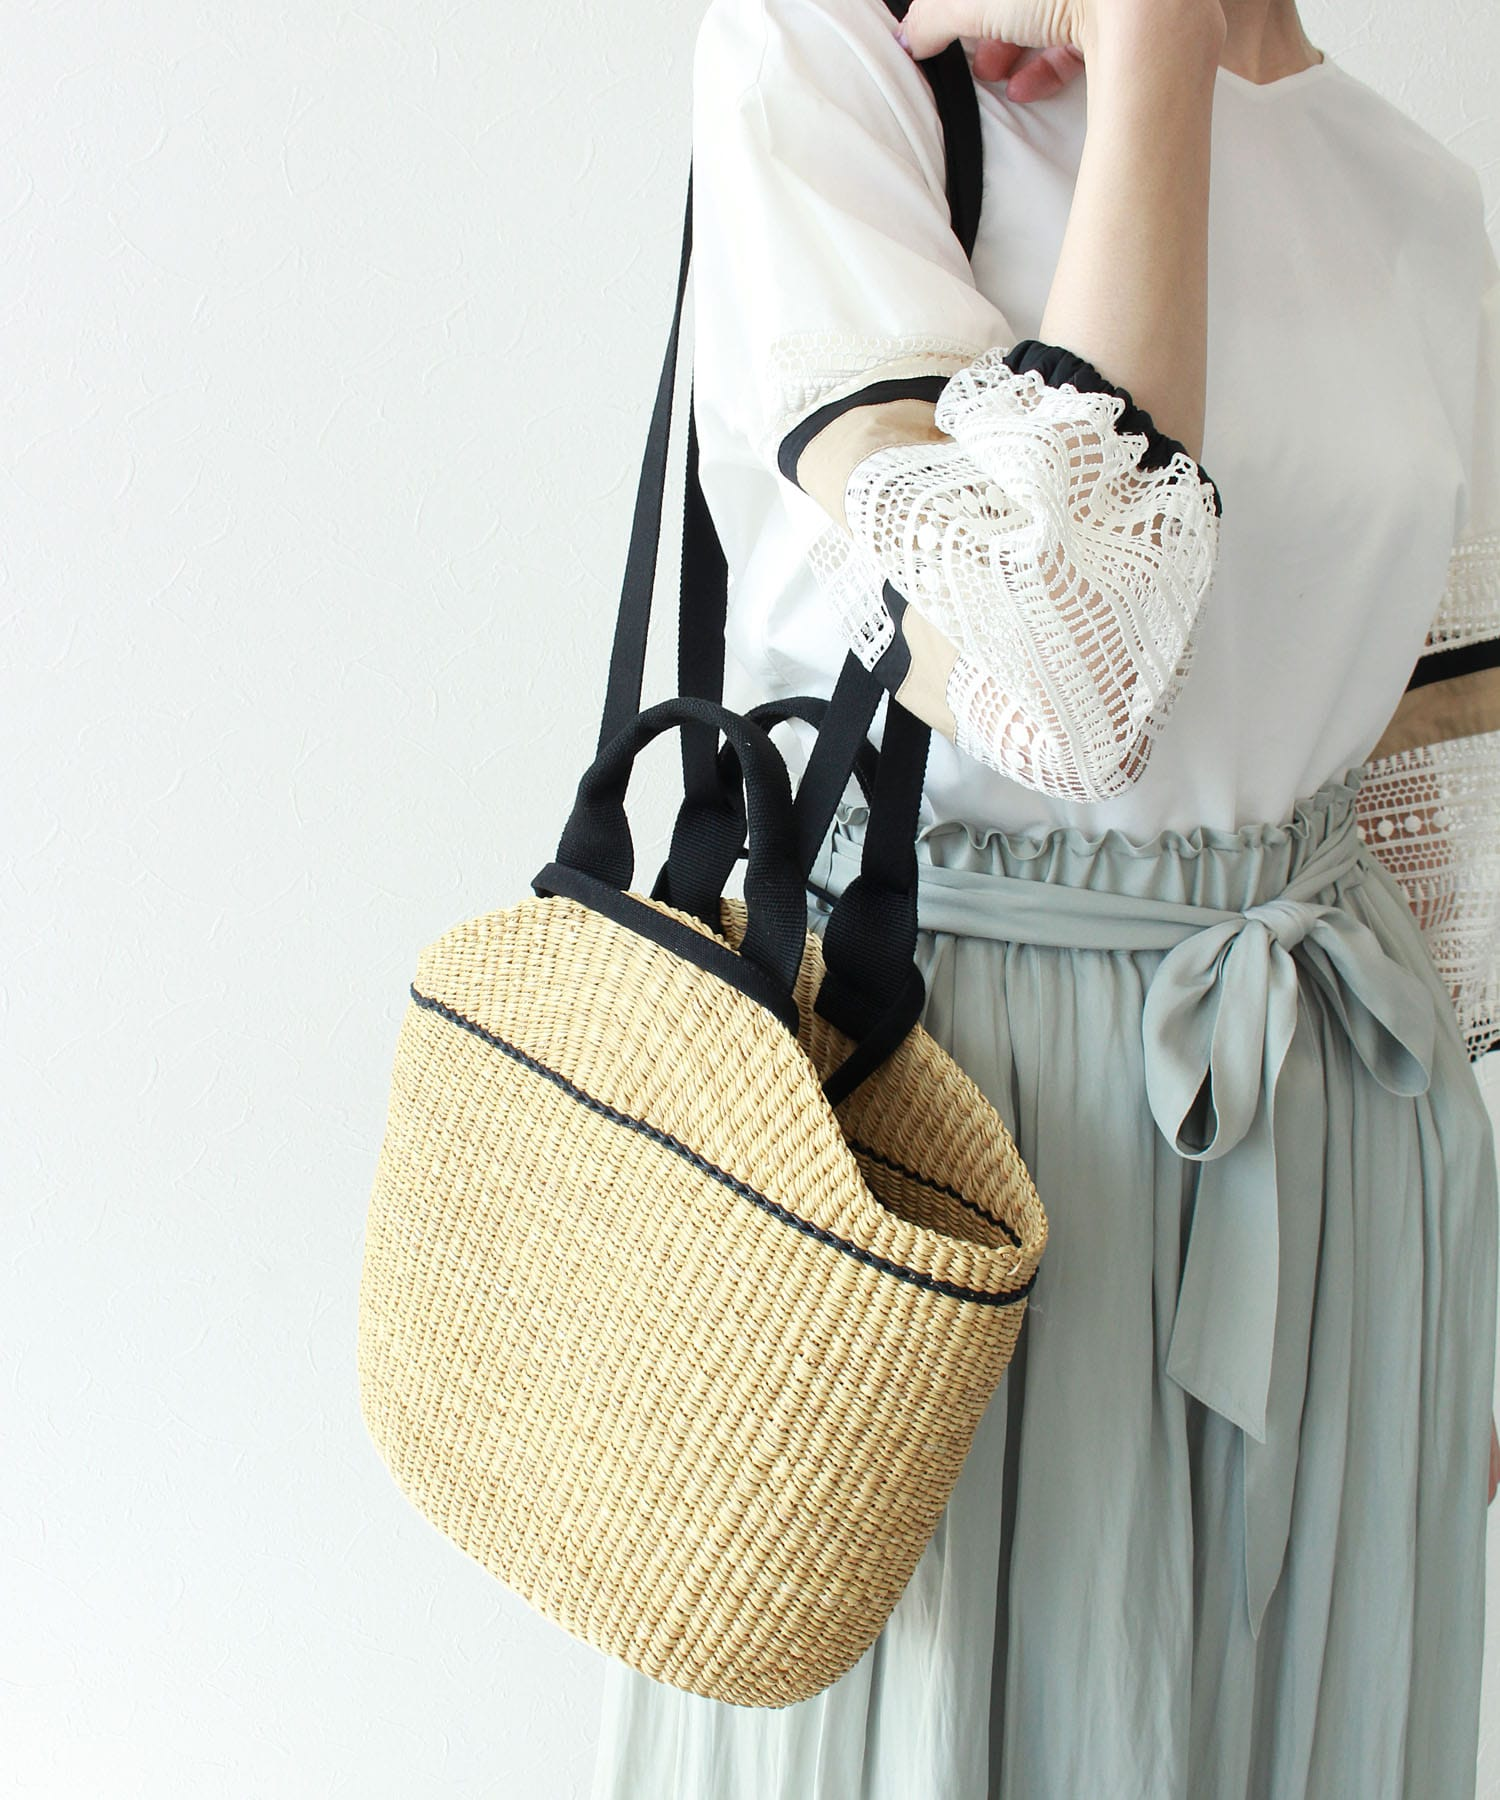 【MUUN / ムーニュ】NATH COTTON KAGO BAG